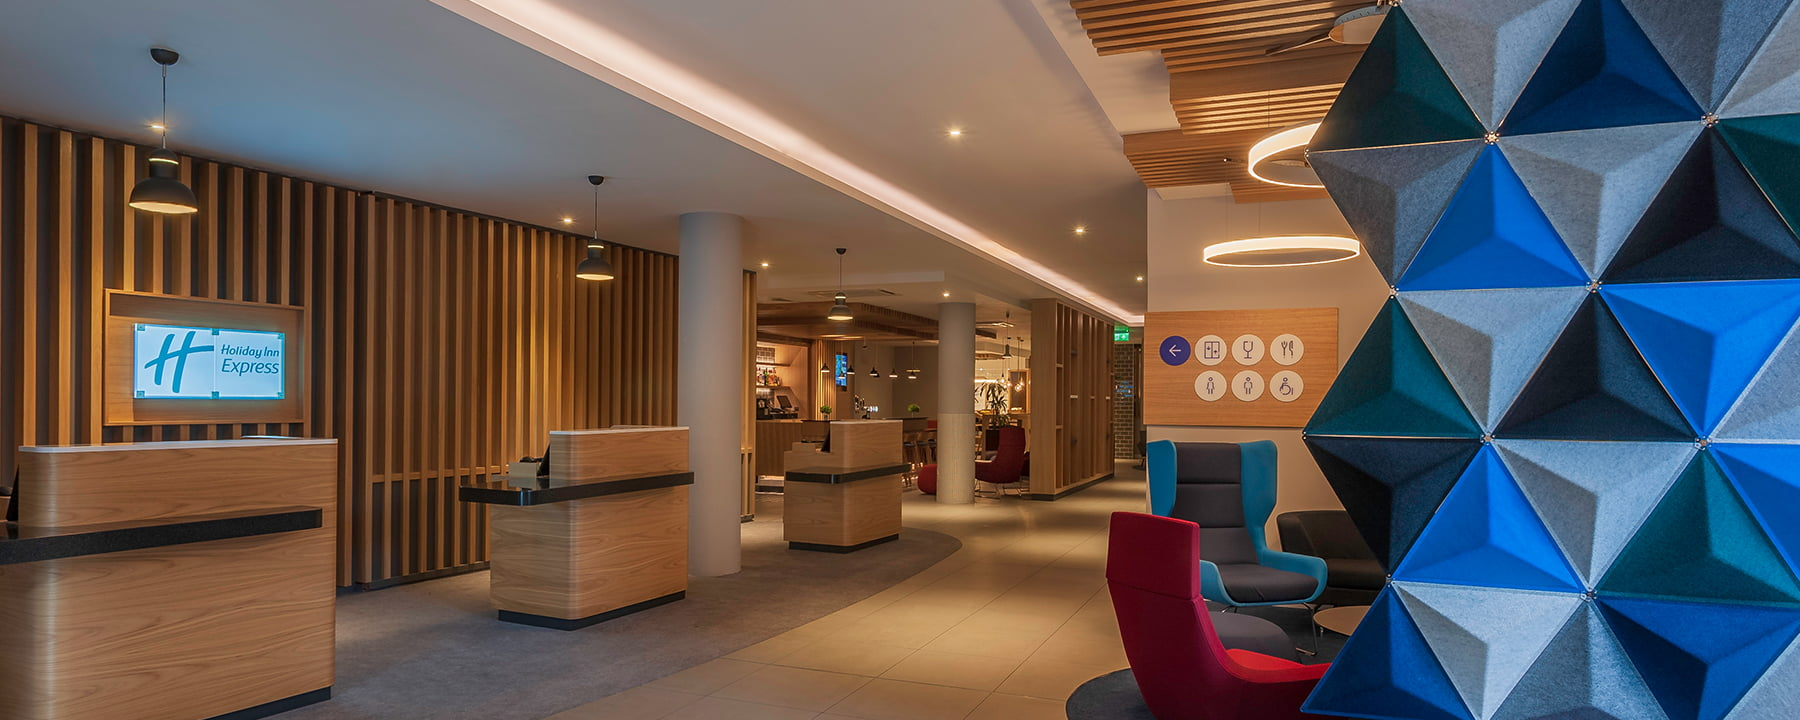 Dublin Airport hotel reception